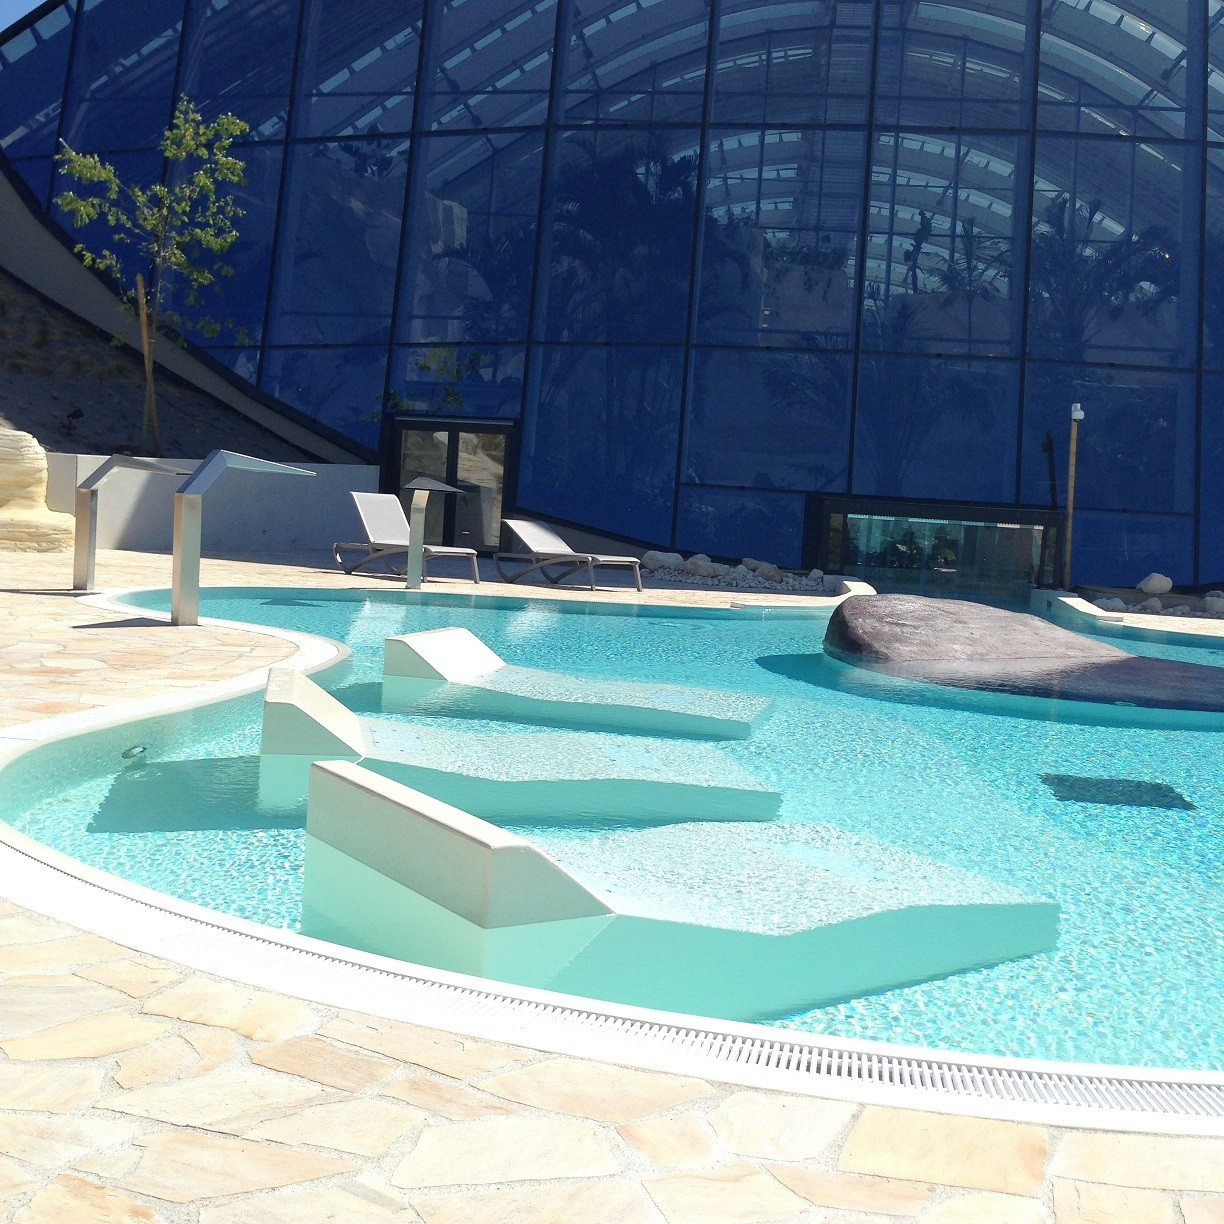 Adresse center parcs bois francs for Piscine center parc sarrebourg